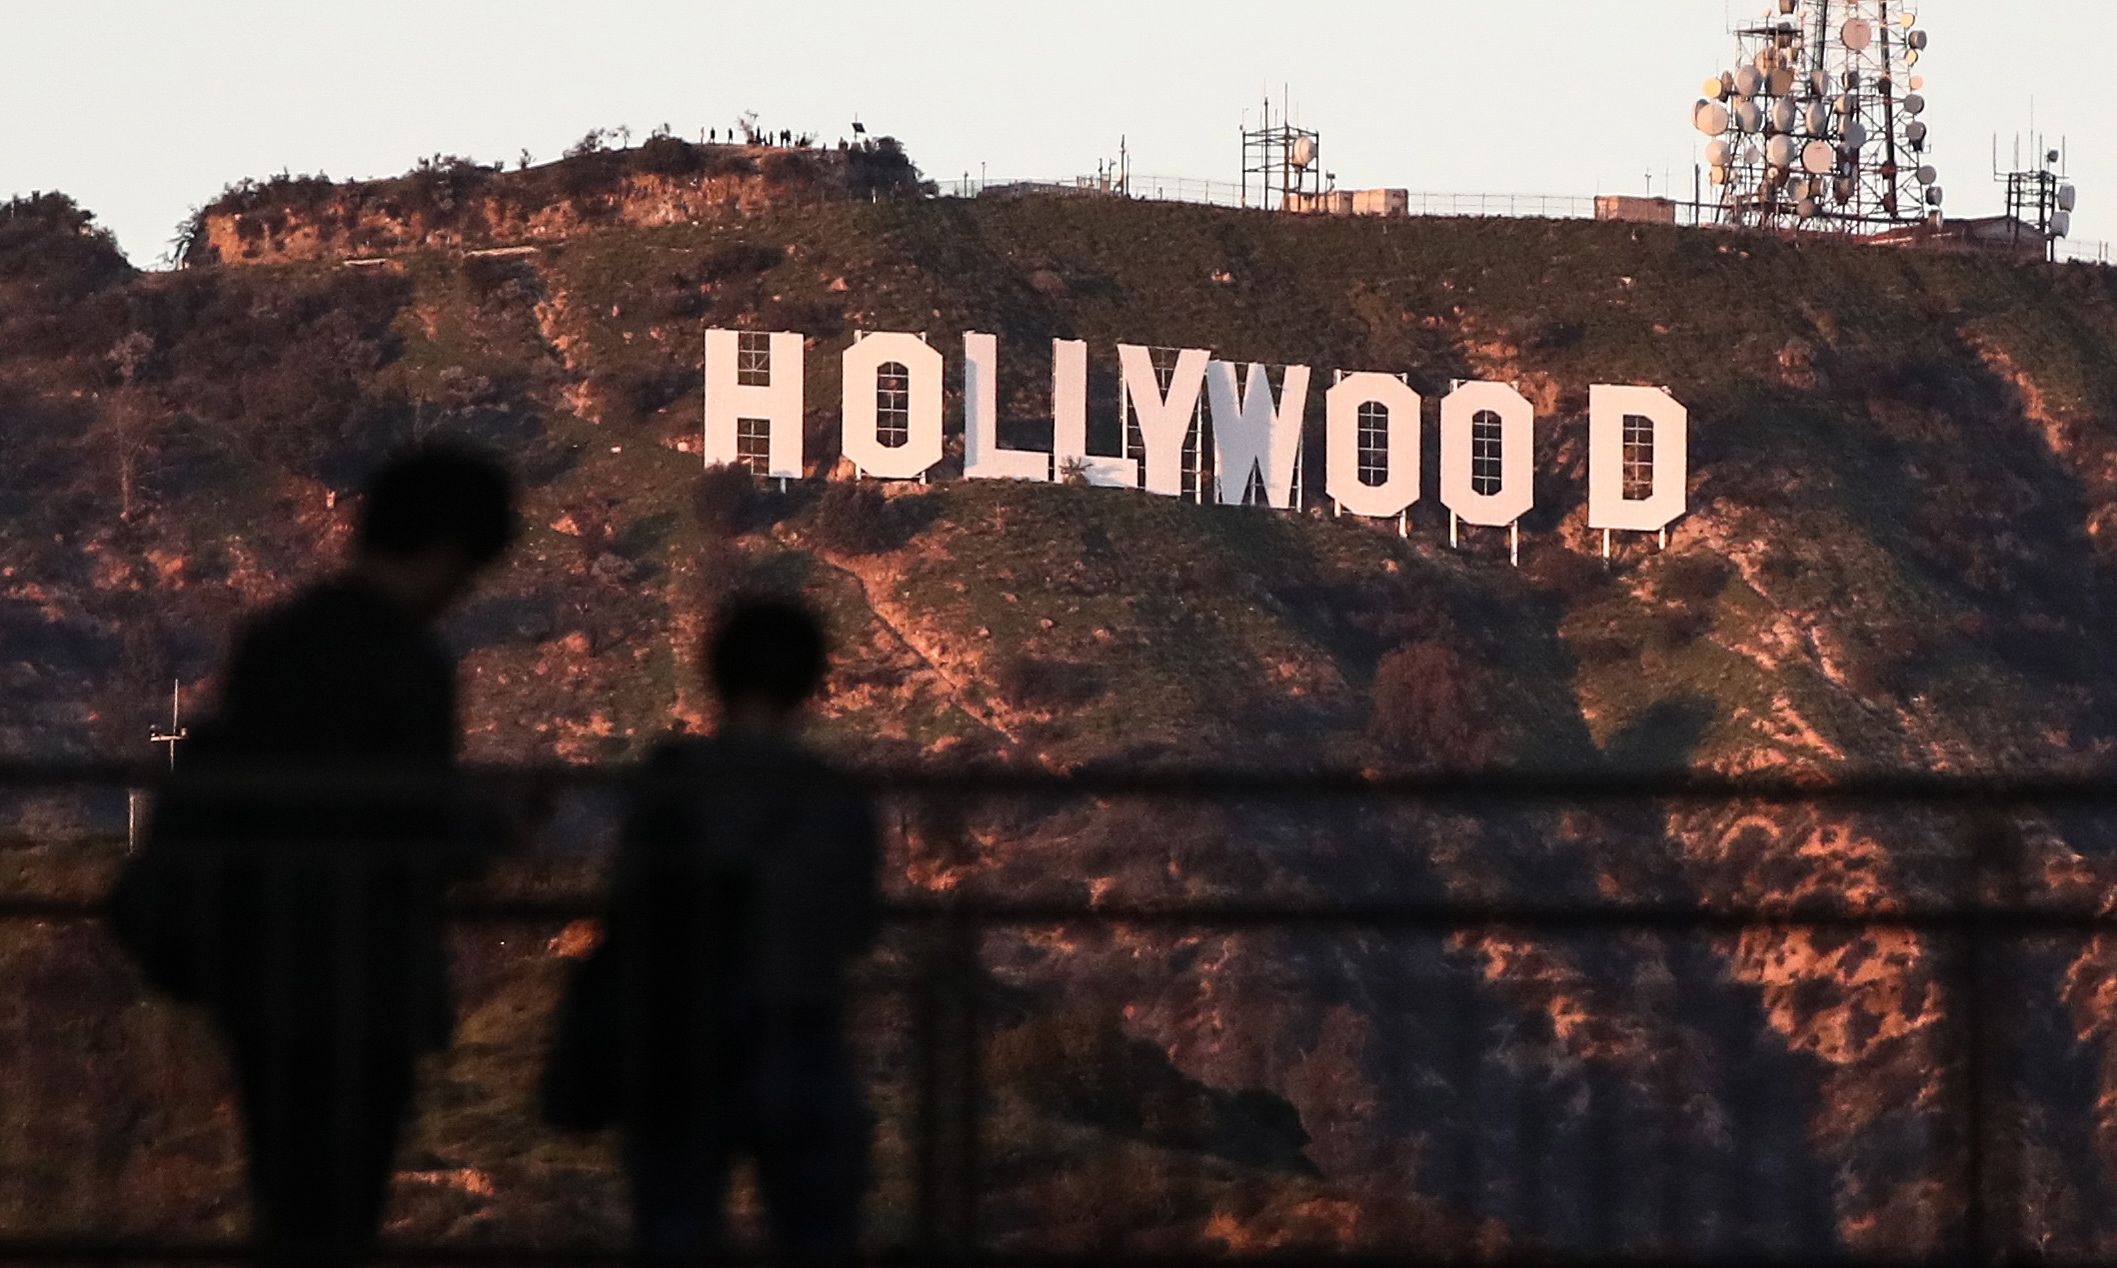 Hollywood threatens to pull productions in Georgia over abortion bill